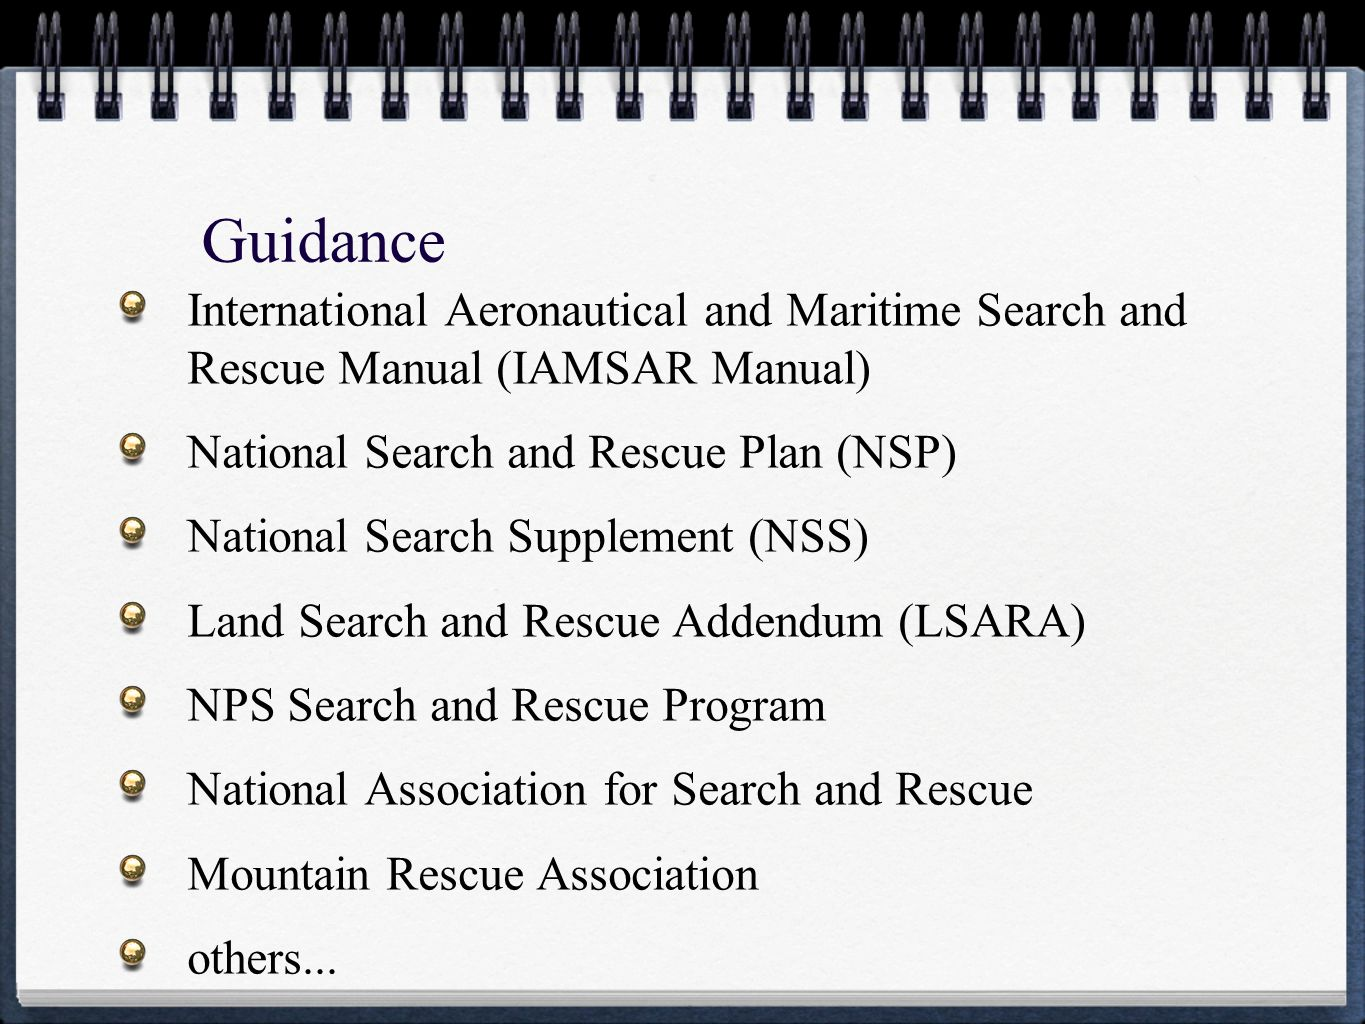 Guidance International Aeronautical and Maritime Search and Rescue Manual (IAMSAR Manual) National Search and Rescue Plan (NSP) National Search Supplement (NSS) Land Search and Rescue Addendum (LSARA) NPS Search and Rescue Program National Association for Search and Rescue Mountain Rescue Association others...